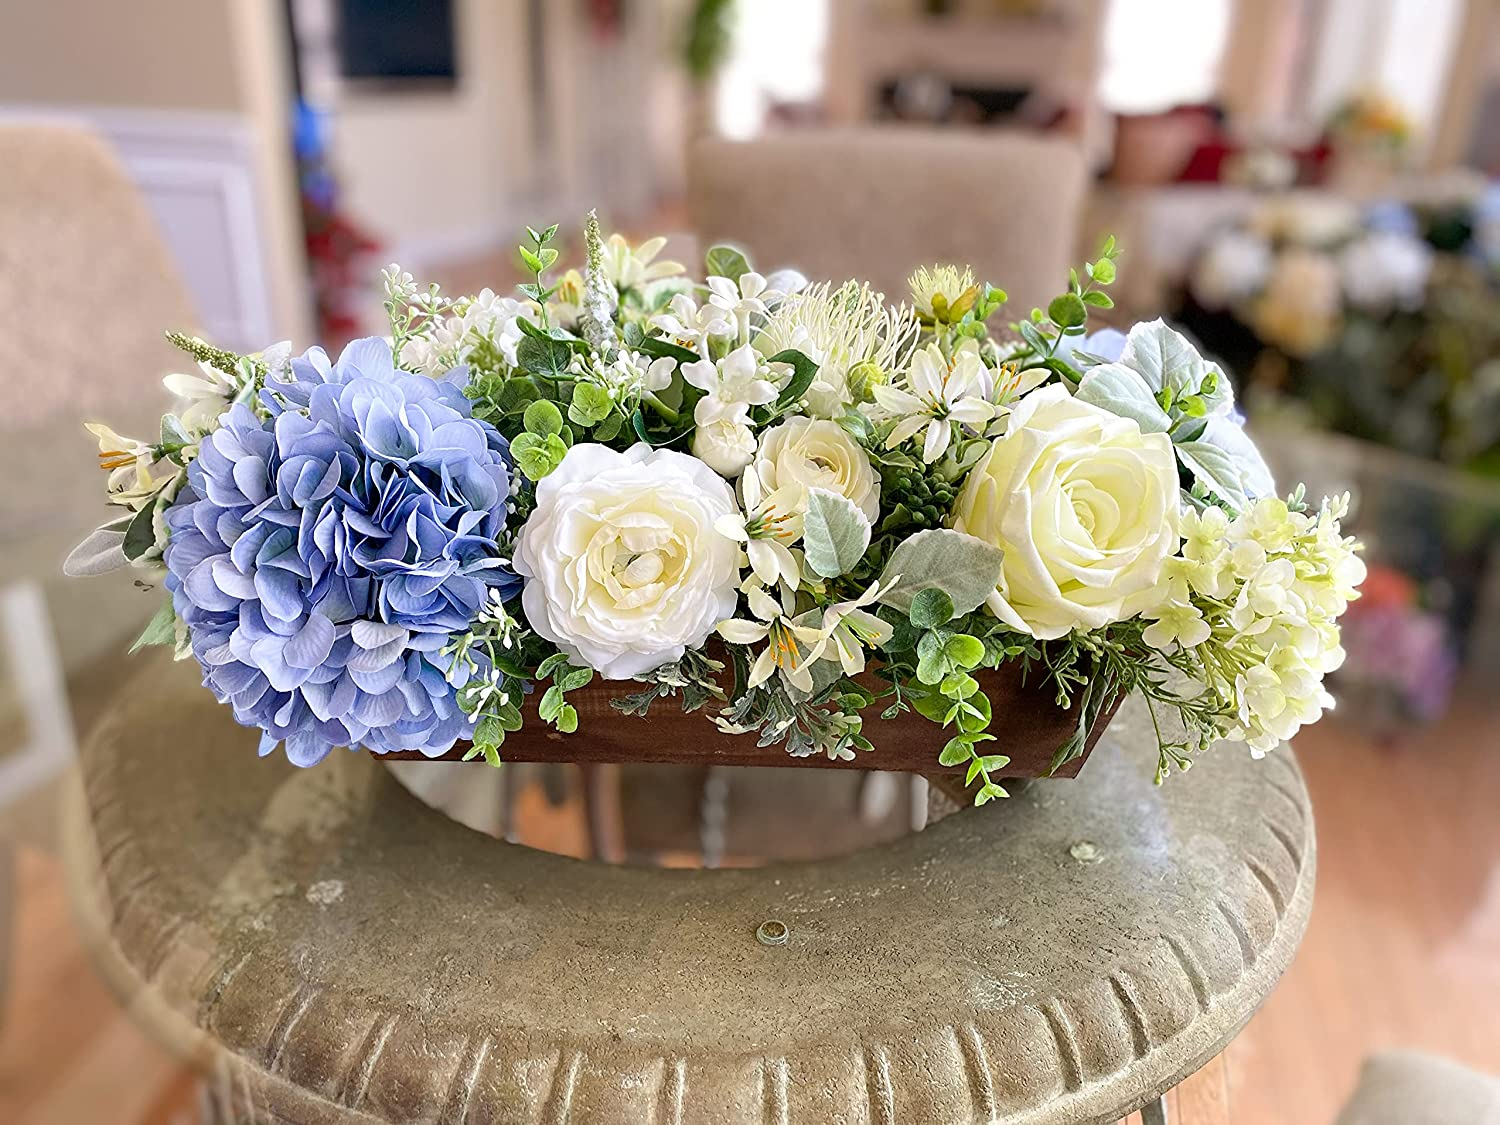 Blue and Ivory Color Over item handling New product type Silk Flower Hand in Wood Arrangement Made a